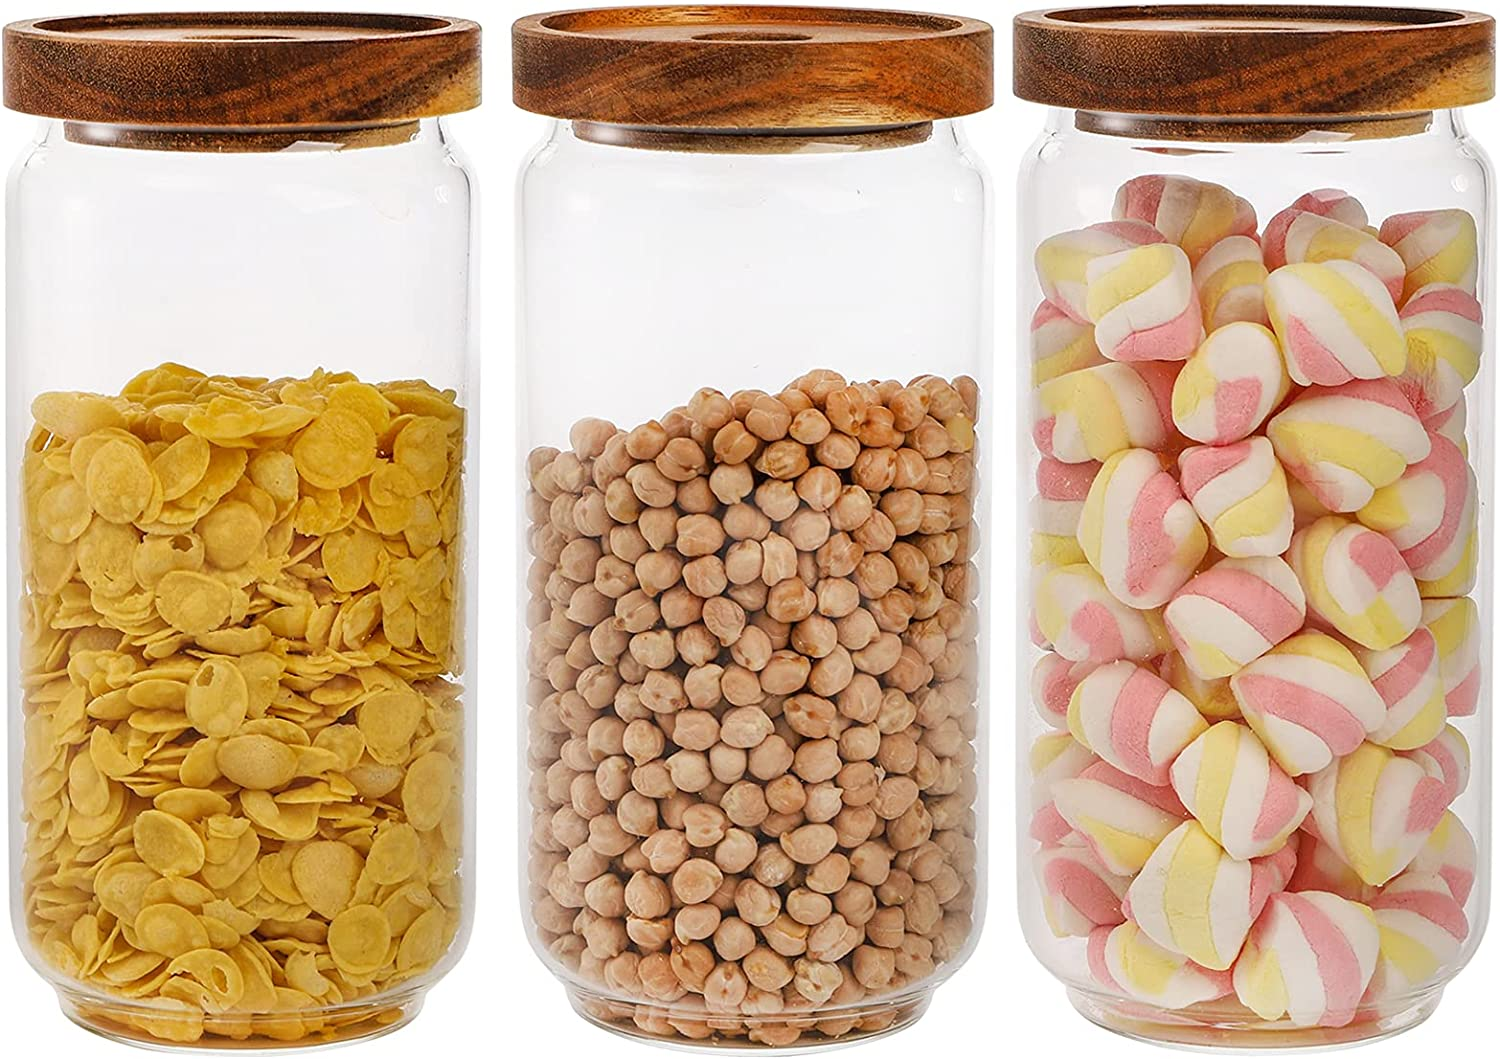 Bekith 3 Pack Glass Storage Containers with Airtight Seal Acacia Wood Lids, 31.6 FL OZ (950ml) Clear Glass Food Storage Jars for Kitchen, Glass Pantry Canister for Spaghetti Pasta, Coffee, Beans